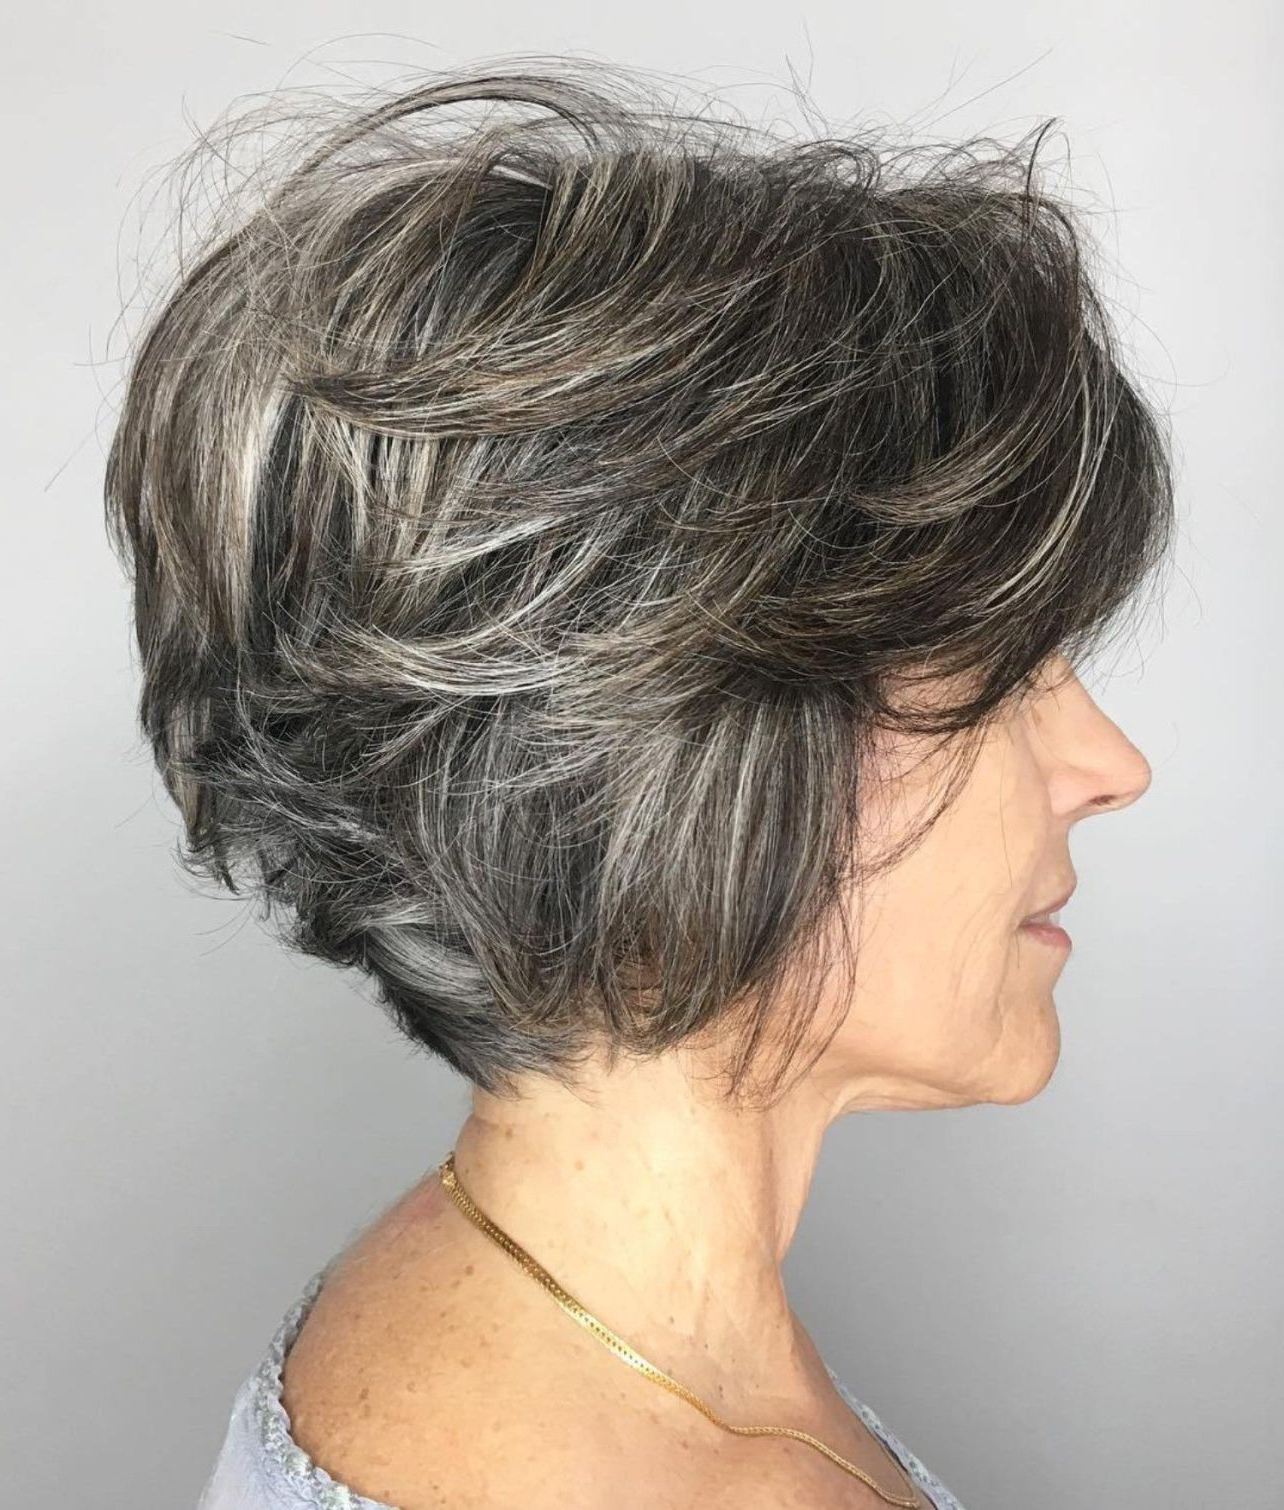 90 Classy And Simple Short Hairstyles For Women Over 50 In 2018 Intended For Tapered Gray Pixie Hairstyles With Textured Crown (Gallery 7 of 20)